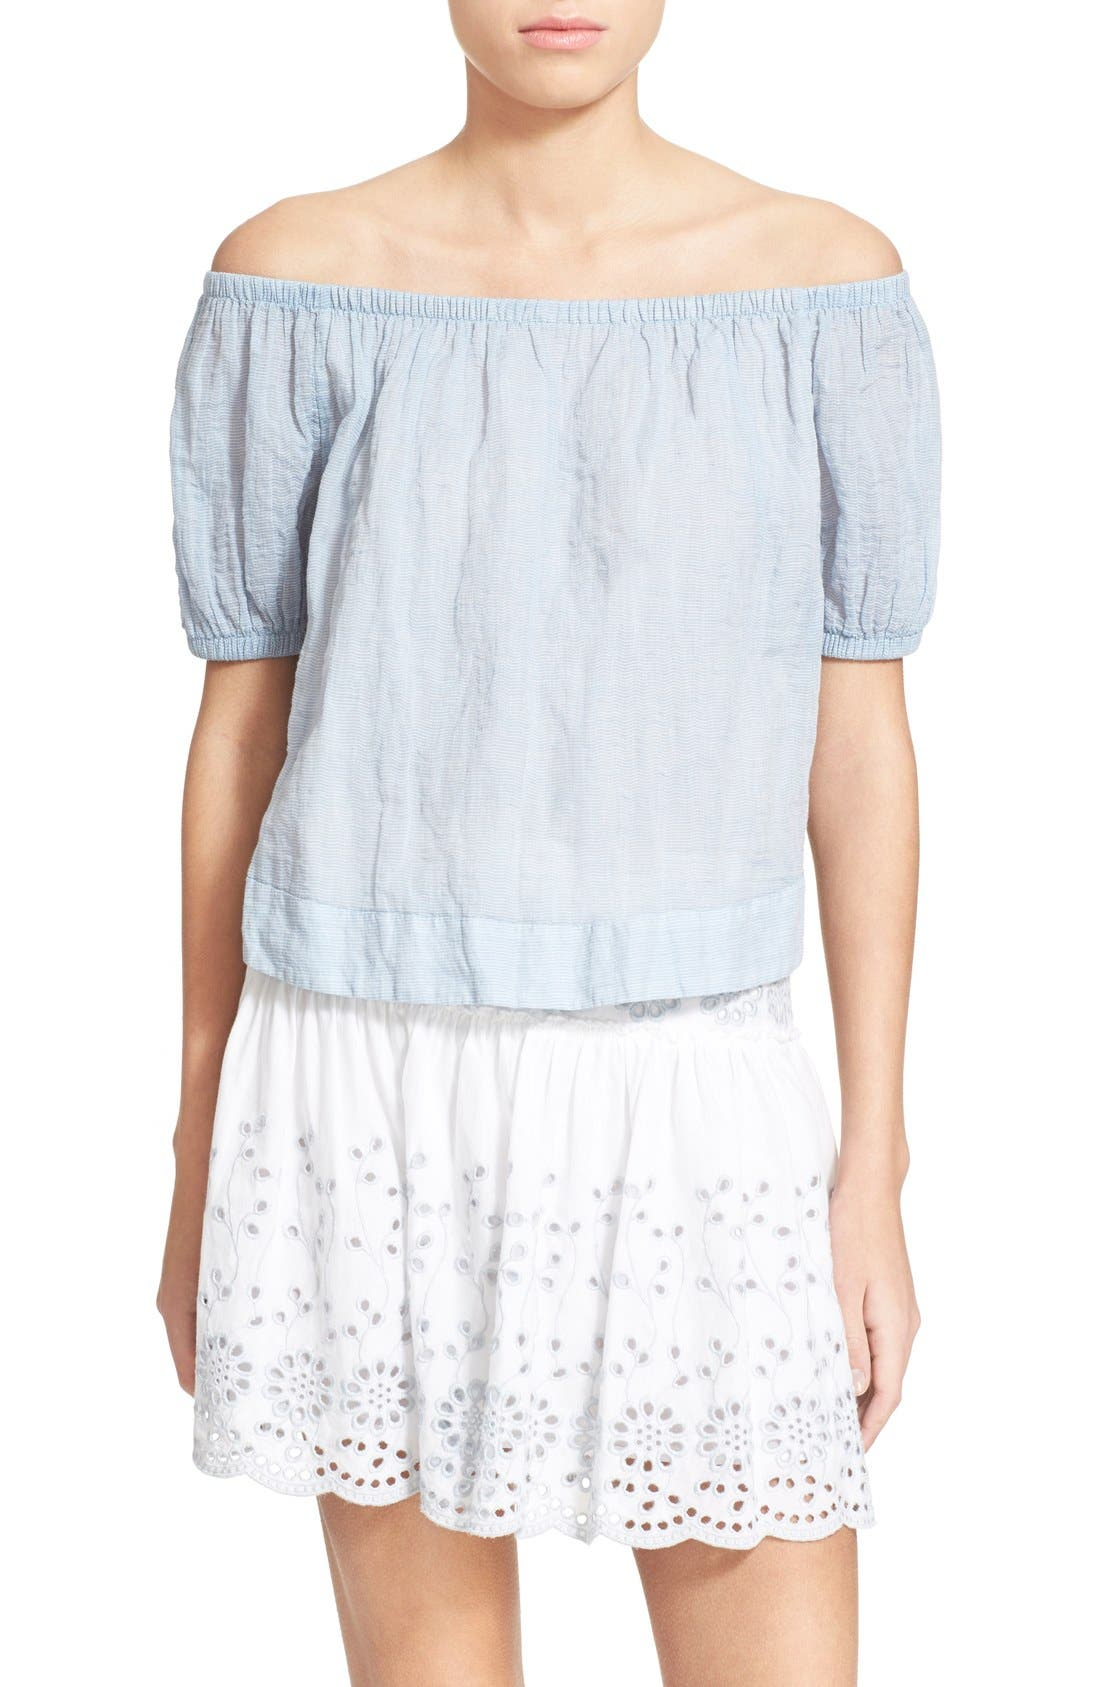 Alternate Image 1 Selected - See by Chloé Stripe Cotton Voile Off the Shoulder Top